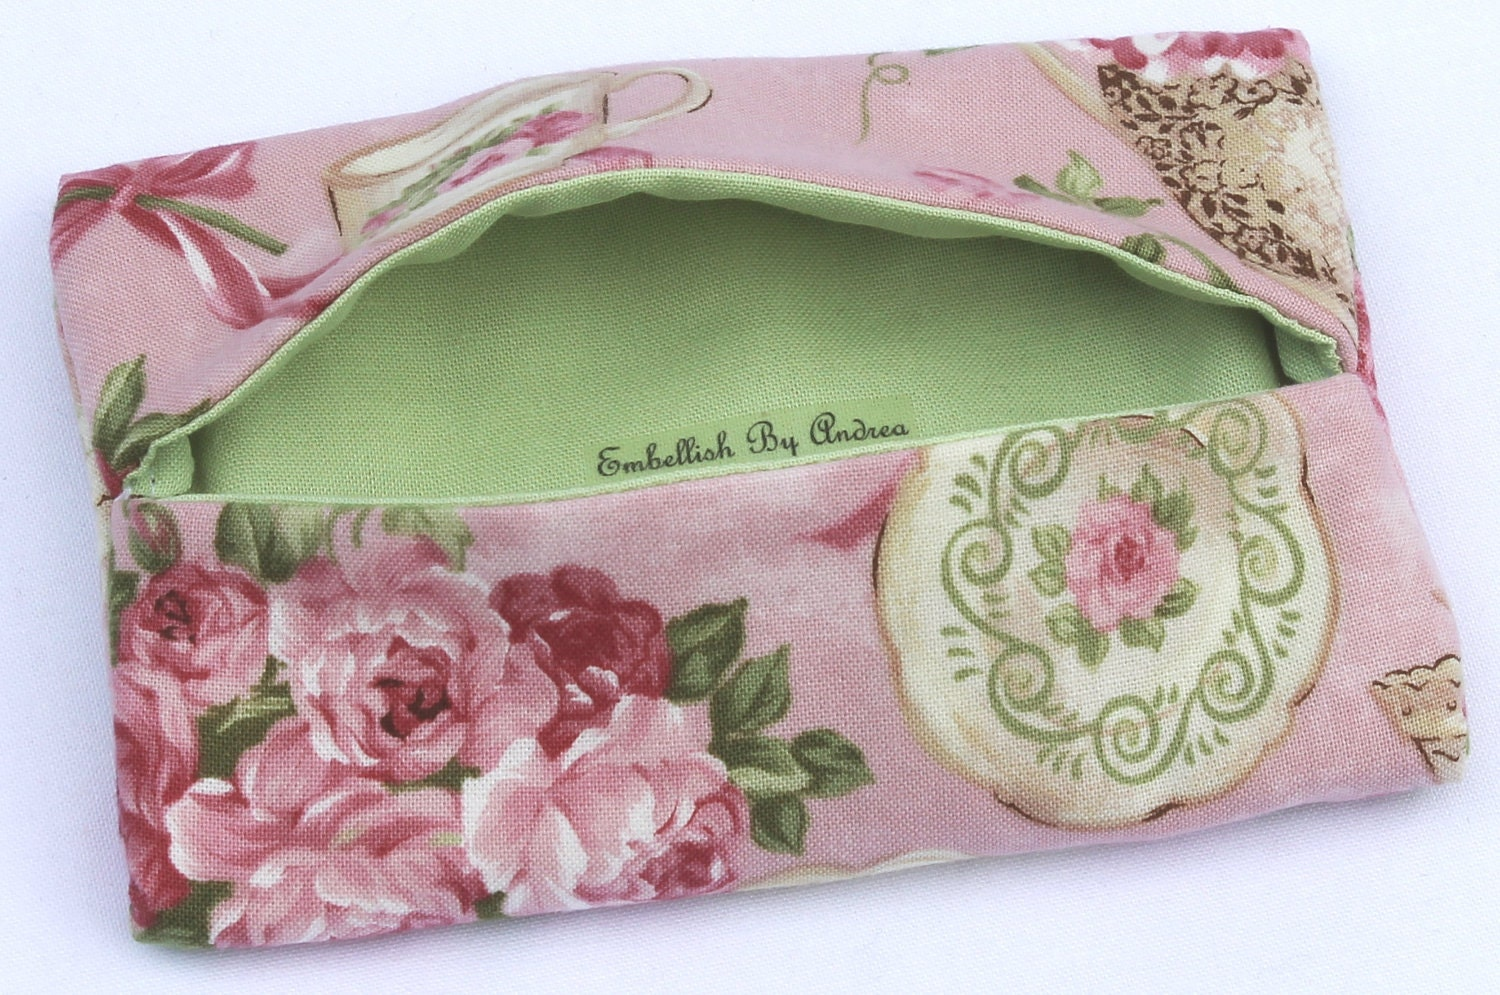 Handmade Tissue Holder, Kleenex Holder, Breast Cancer Support, Tea Cup Fabric, Embellish By Andrea